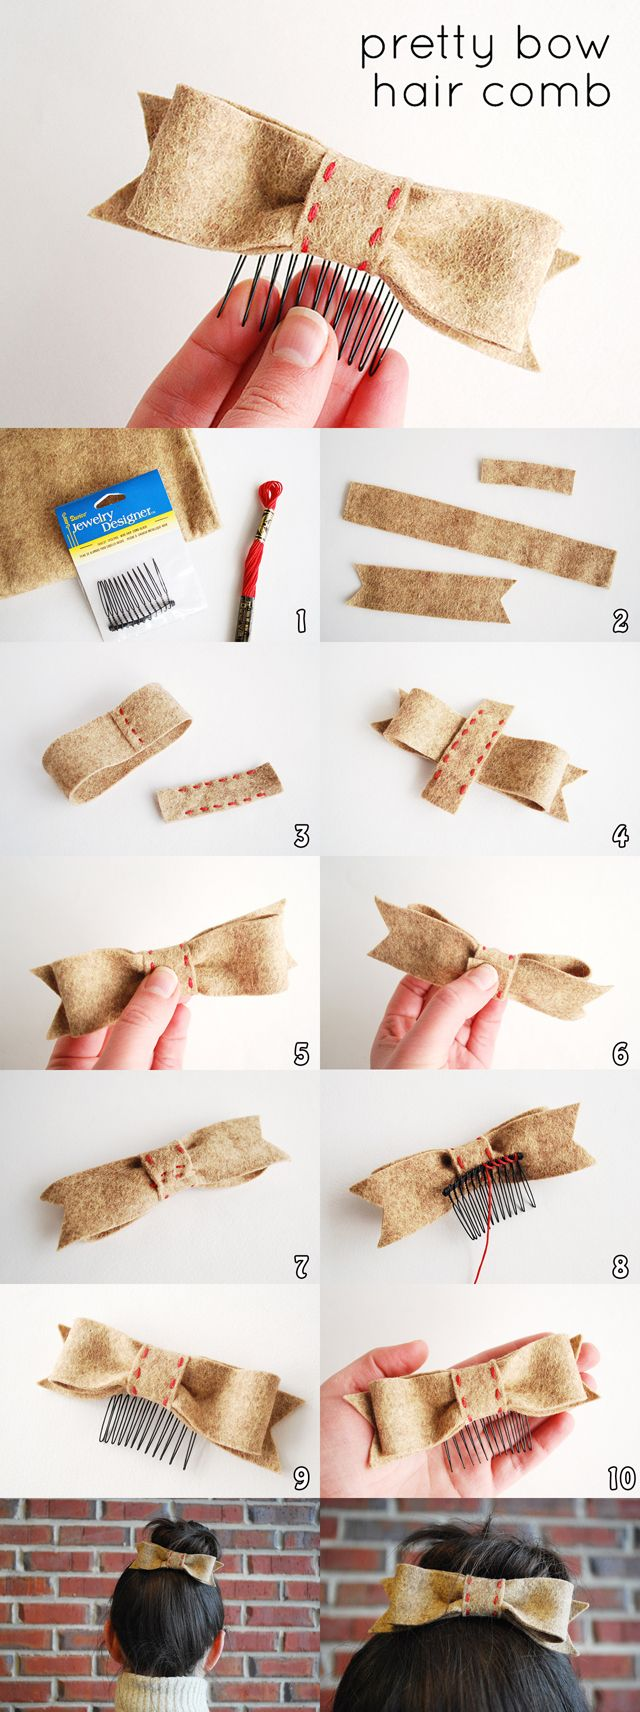 can also make for headbands and clips! cute!